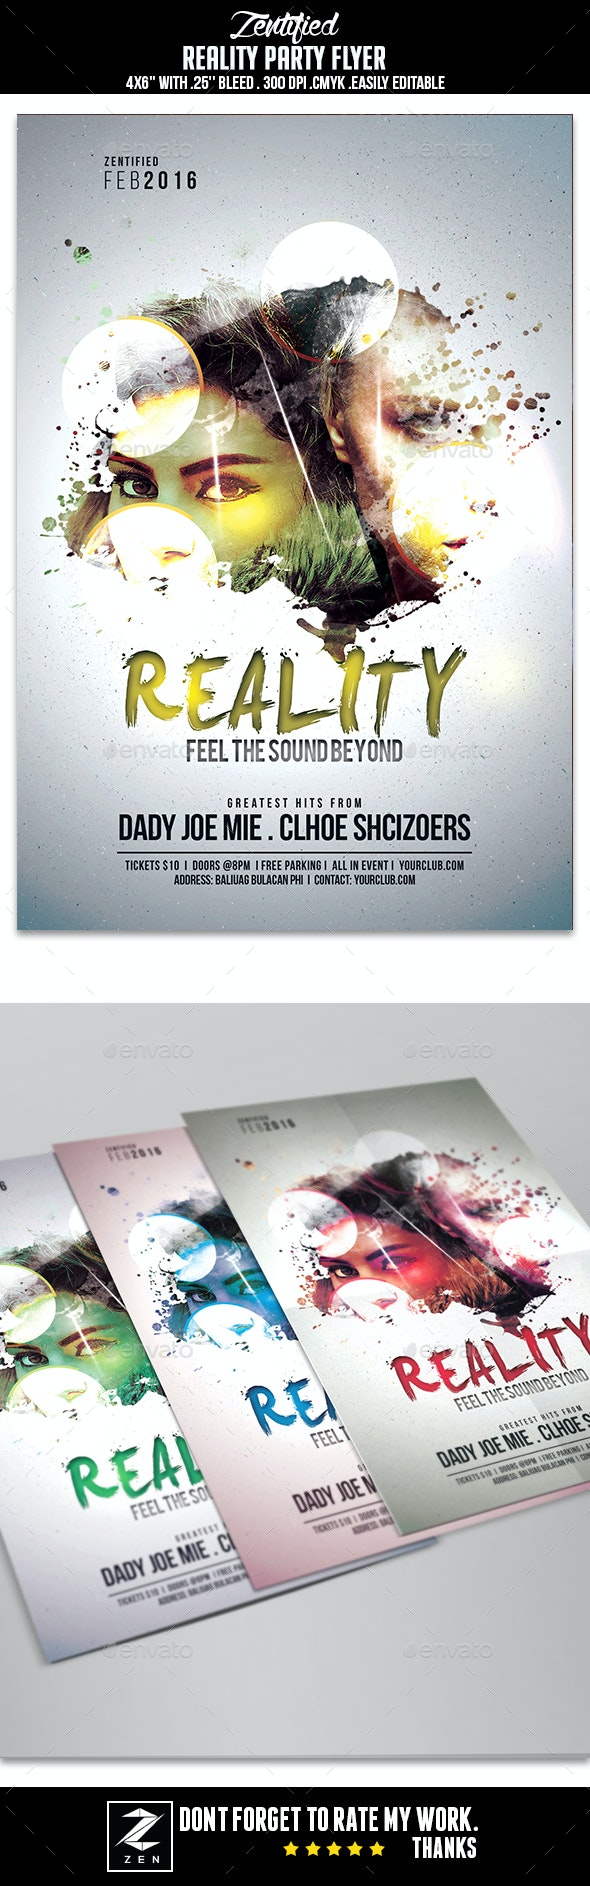 Reality Party Flyer - Clubs & Parties Events